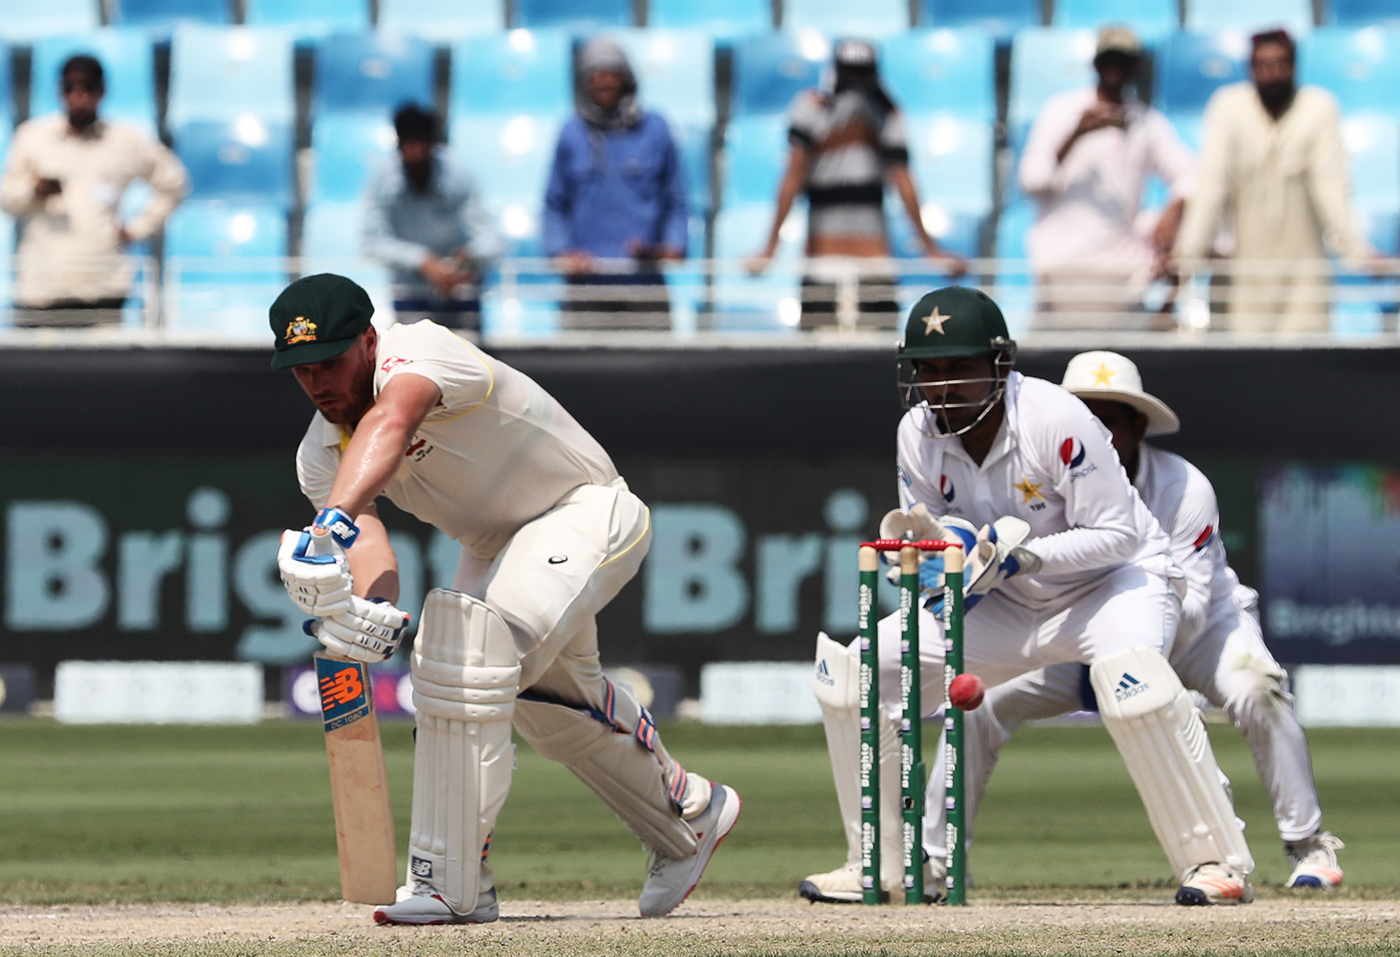 Finch was a bright spot on the 2018 Test series against Pakistan that was very nearly a complete disaster for Australia